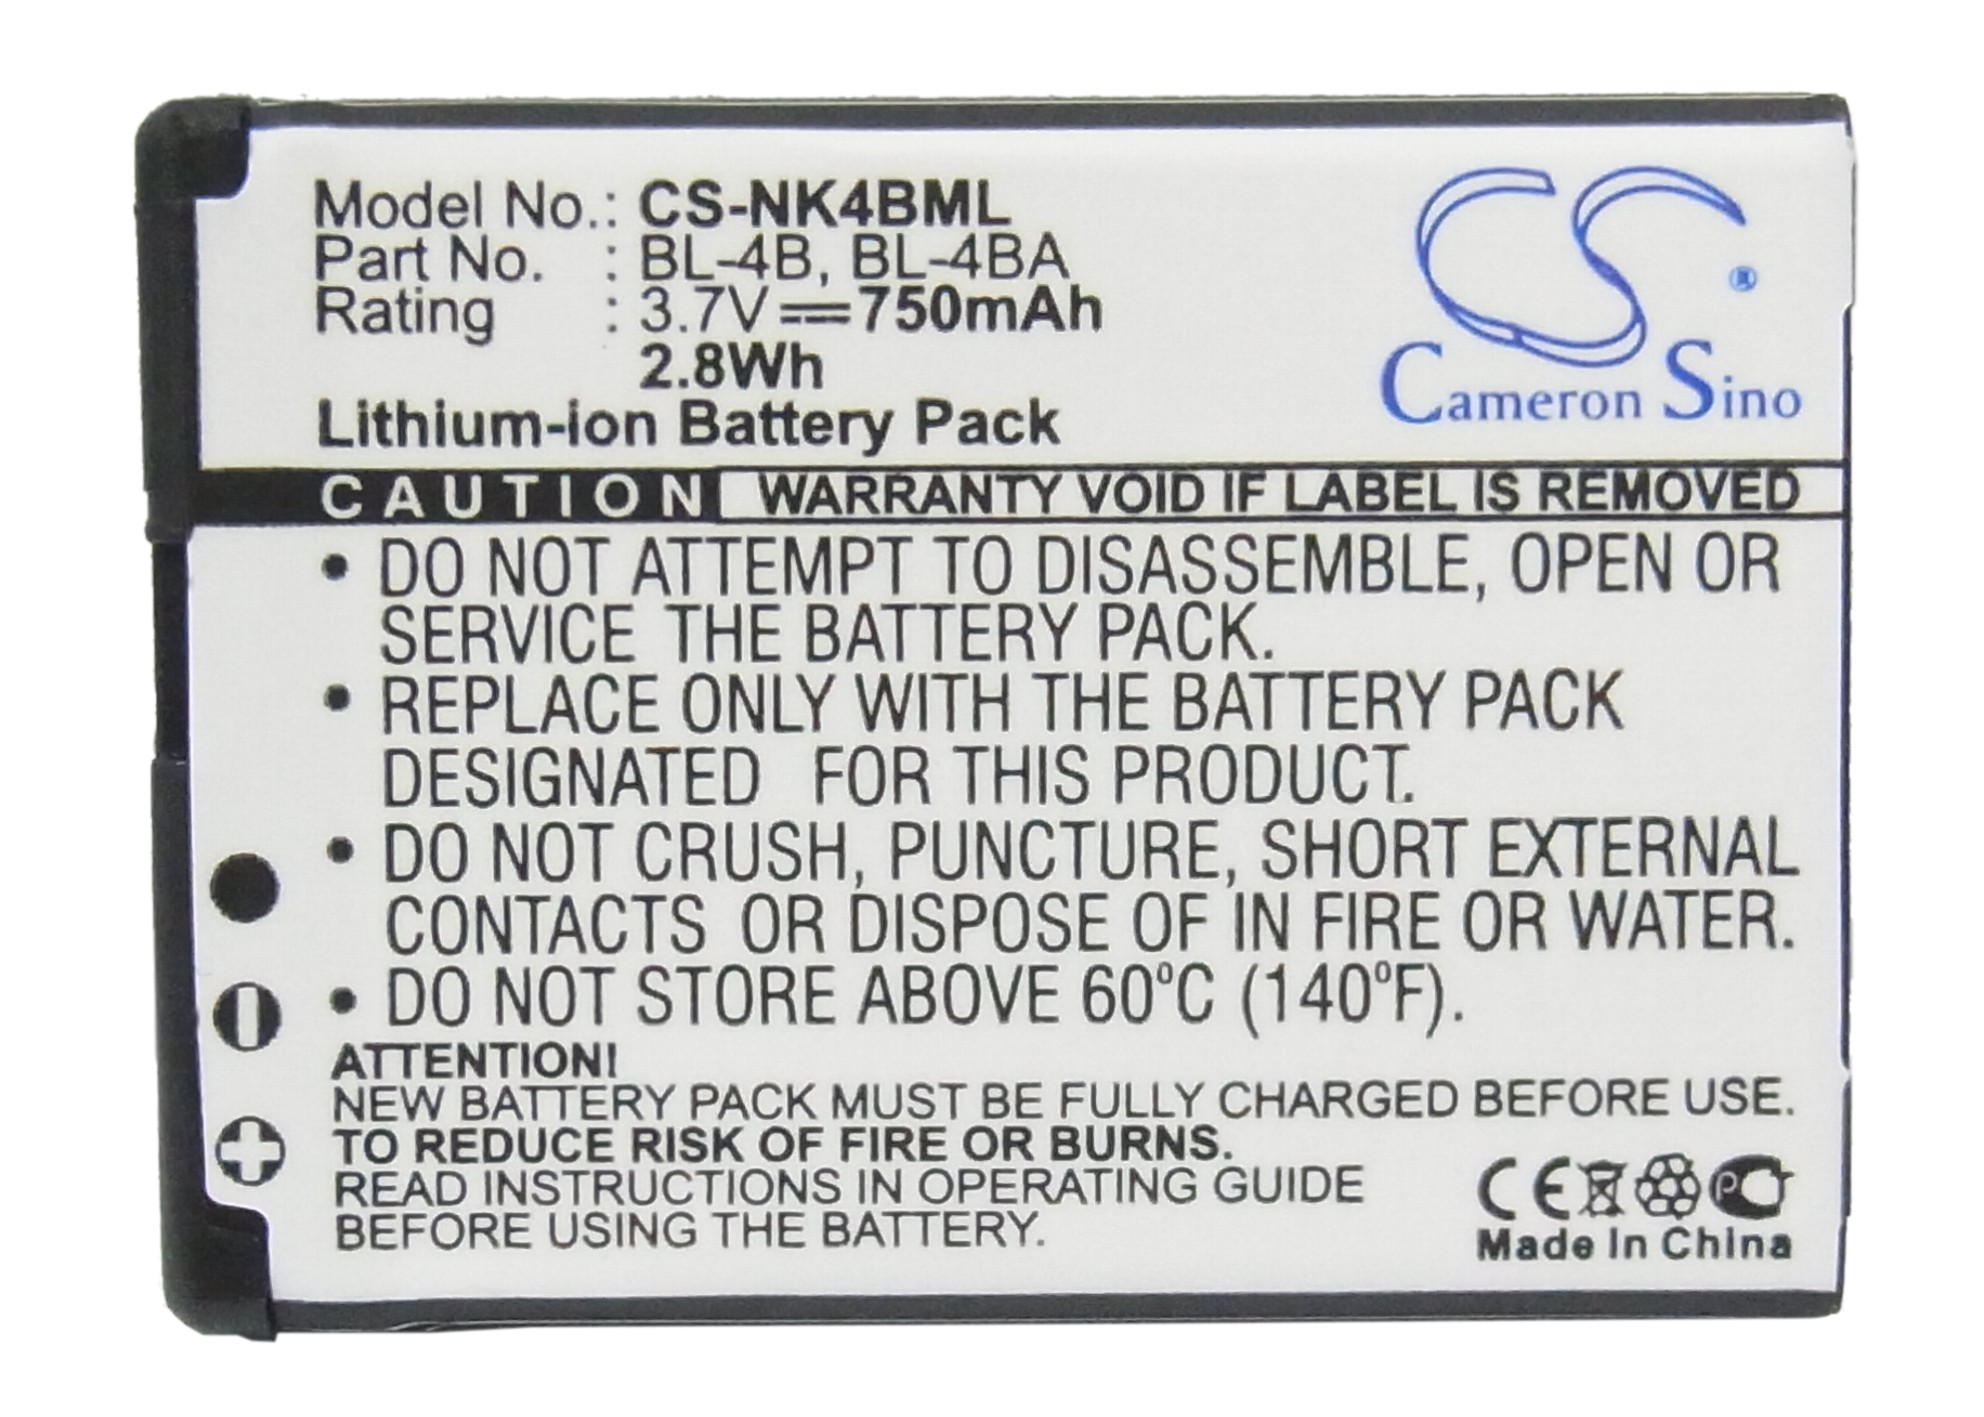 Cameron Sino 750mAh Battery BL-4B for <font><b>Nokia</b></font> 1606,2505,2630,2660,2760,3606,5000,6111,6125,6131,7088,7360,7370,7373,7500,<font><b>N76</b></font> image